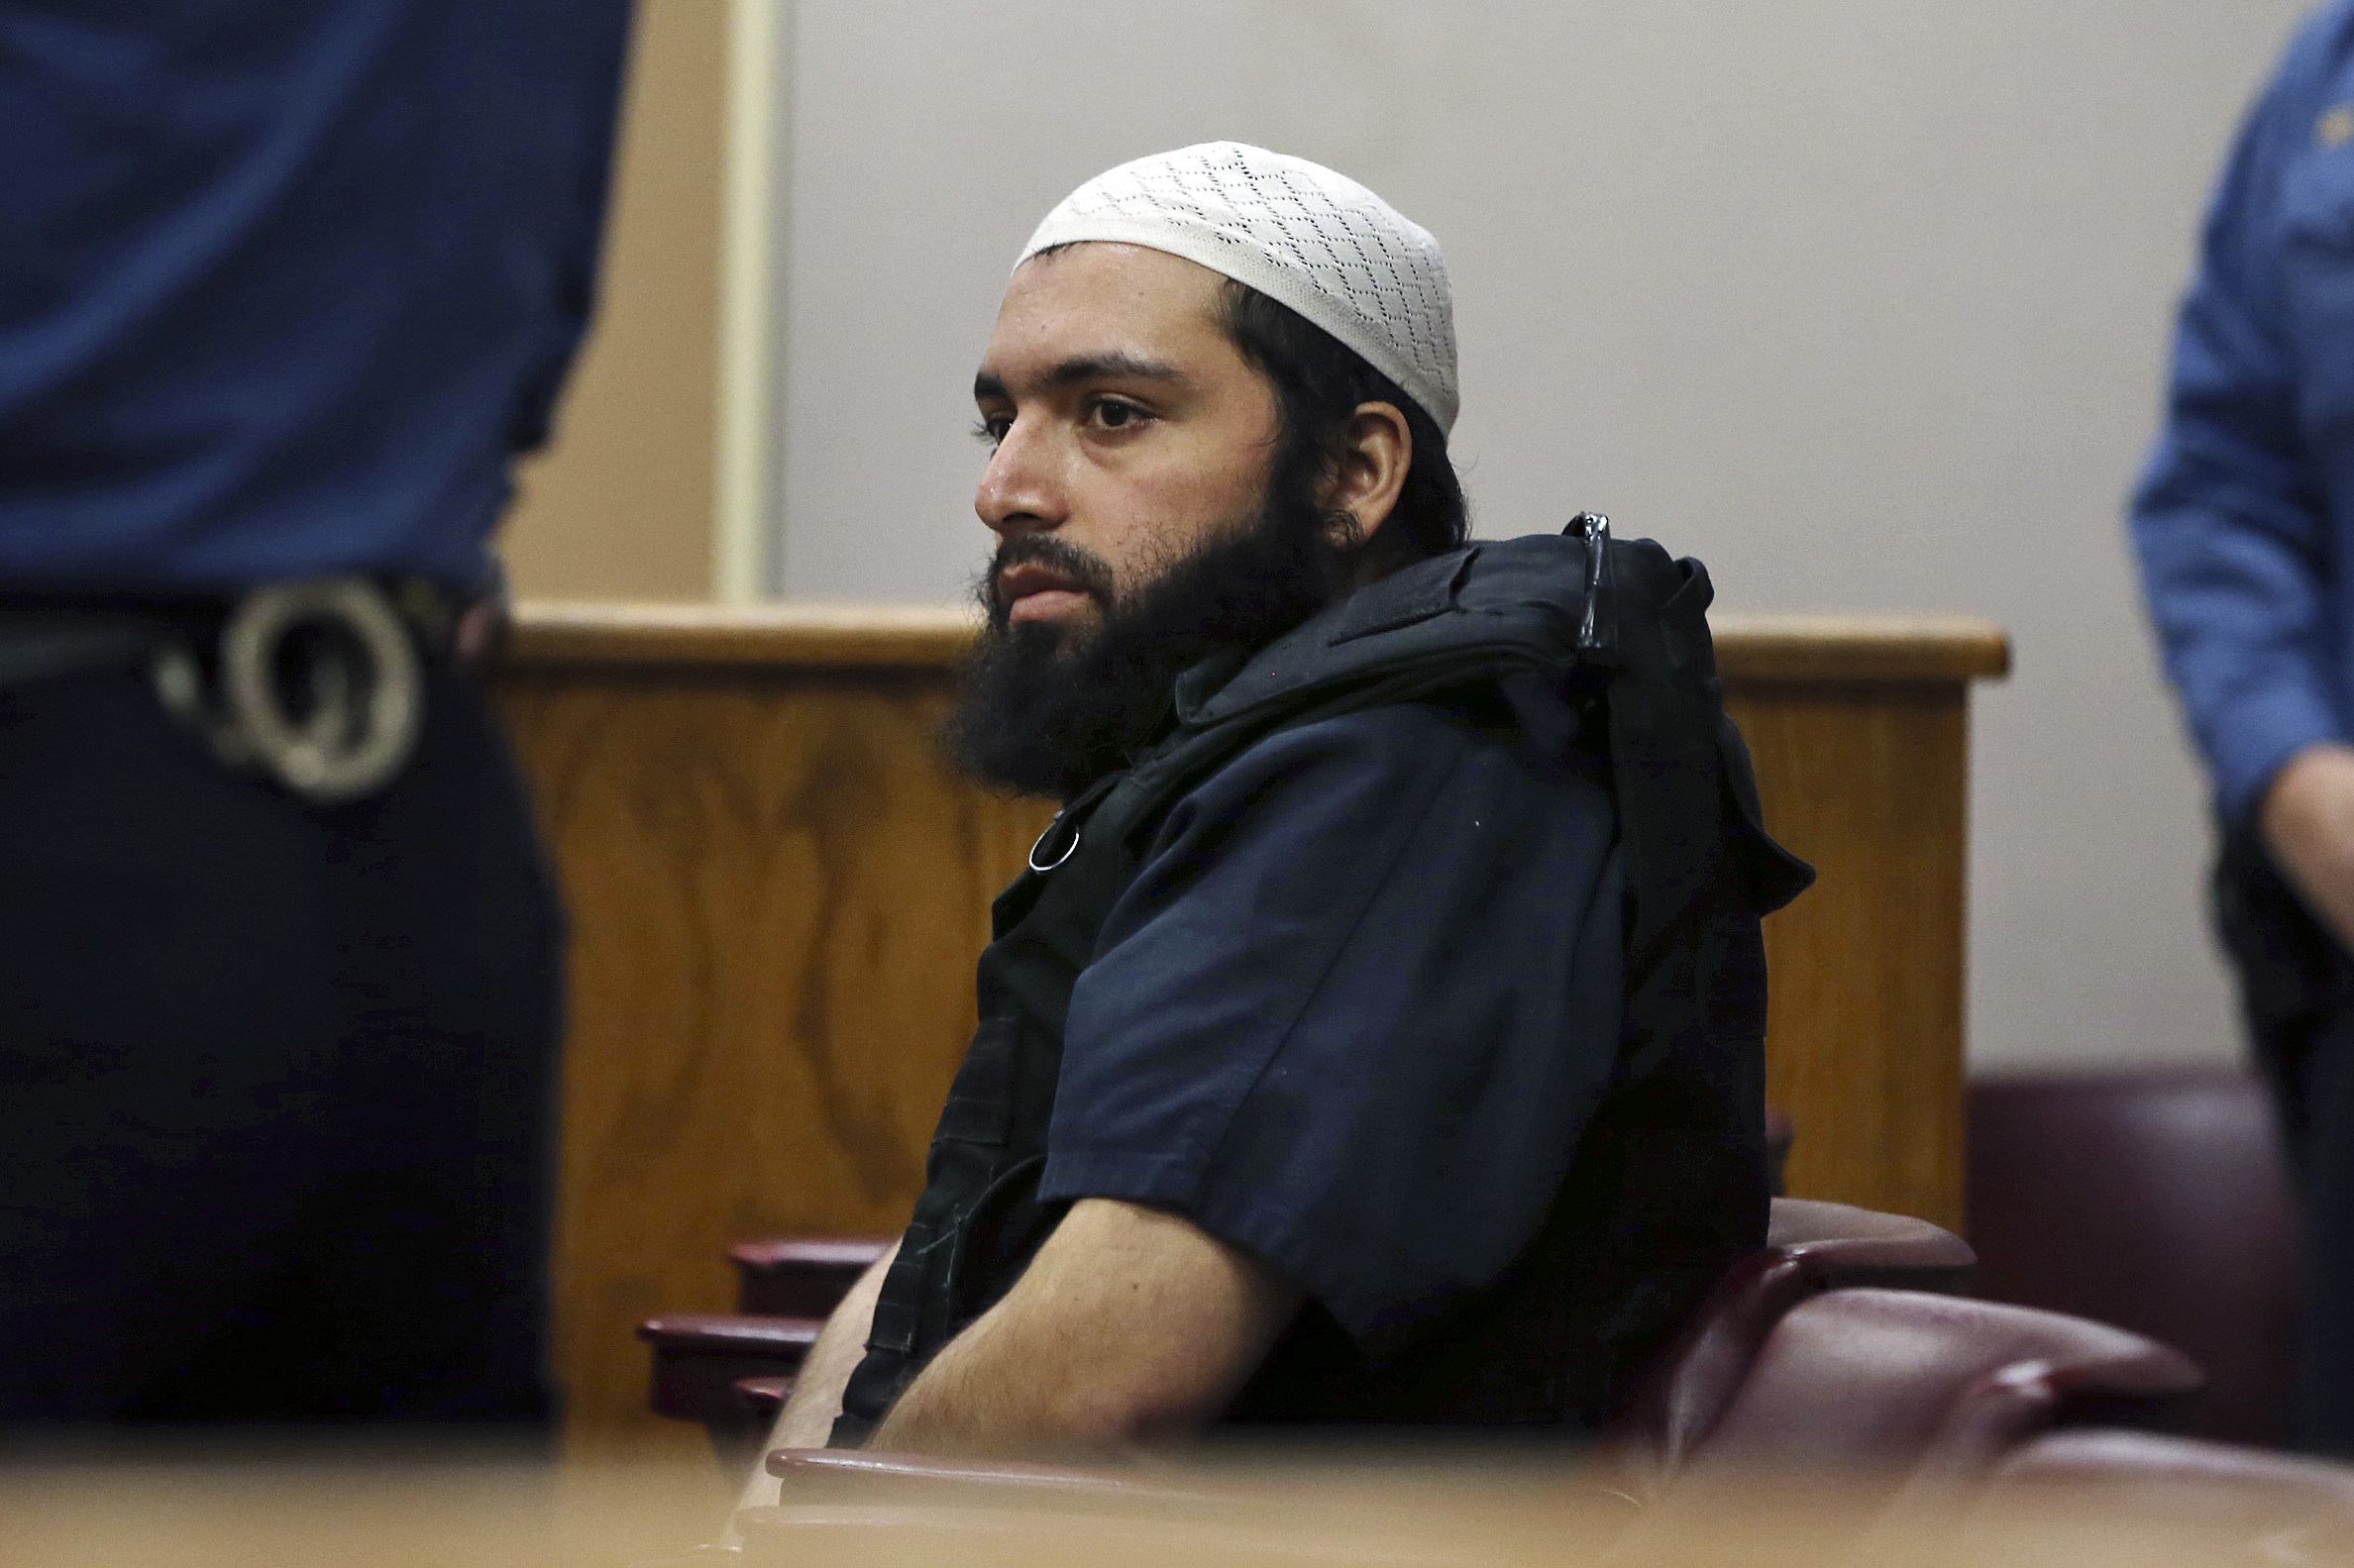 seaside park bomber seeks change of venue over media coverage ahmad khan rahimi the man accused of setting off bombs in new jersey and new